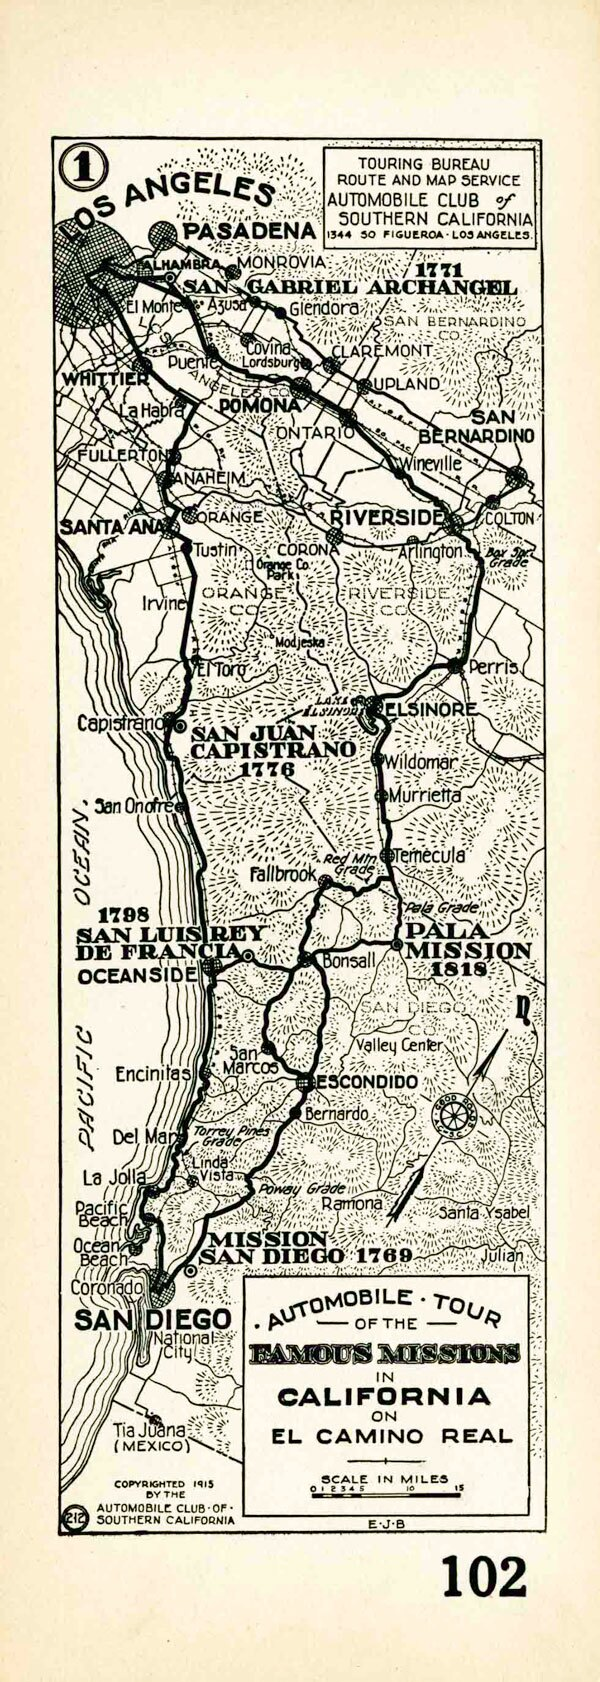 1915 Auto Club strip map showing the route of El Camino Real from the Los Angeles to San Diego. Courtesy of the Automobile Club of Southern California Archives.